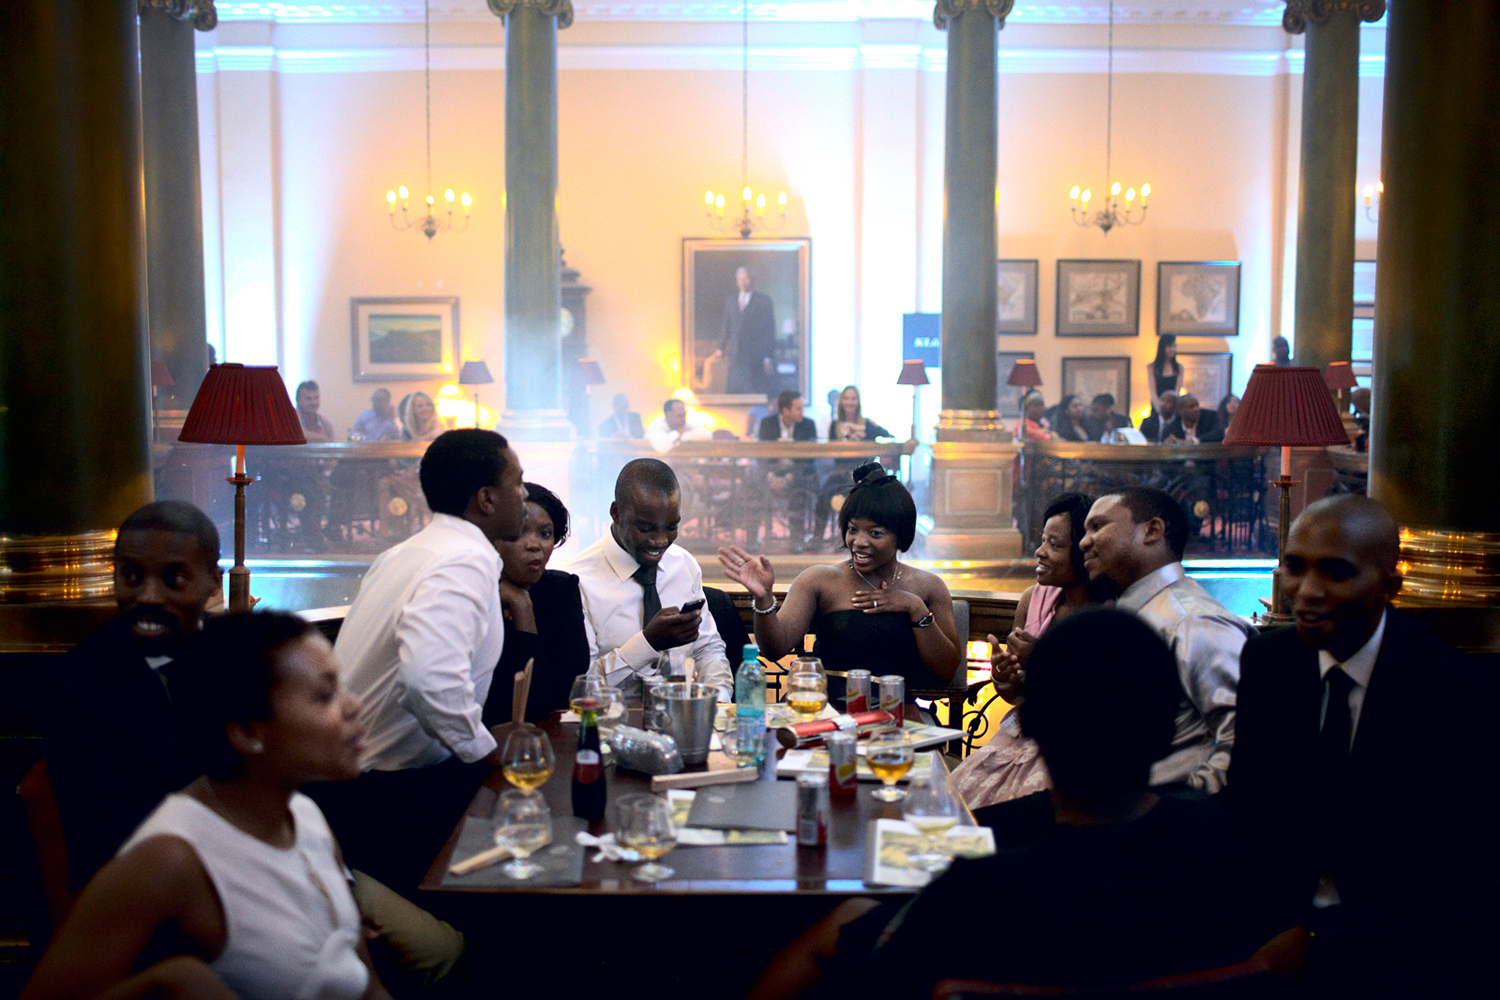 Wealthy black South Africans wait for a fashion show at the Rand Club in Johannesburg, South Africa, February 2011. The Rand Club, A former private all male club during the Apartheid era. Here, the wealthy industrialists of the country networked, wined and dined. The club now allows female members. To see newly wealthy black people in the club is a sign on the new South Africa.